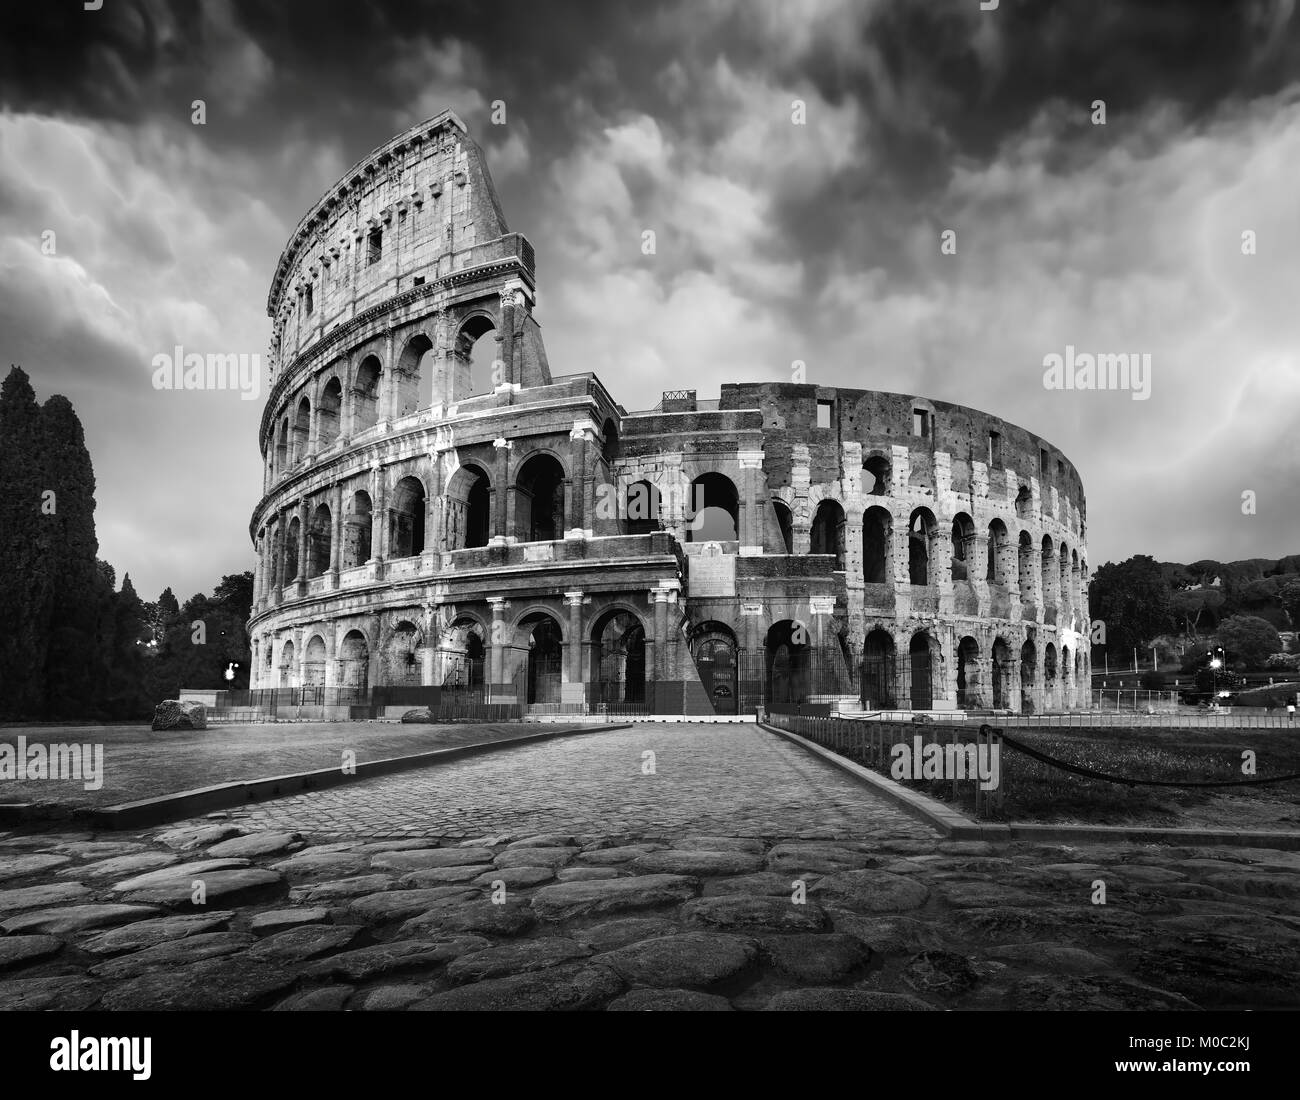 Coliseum Black And White